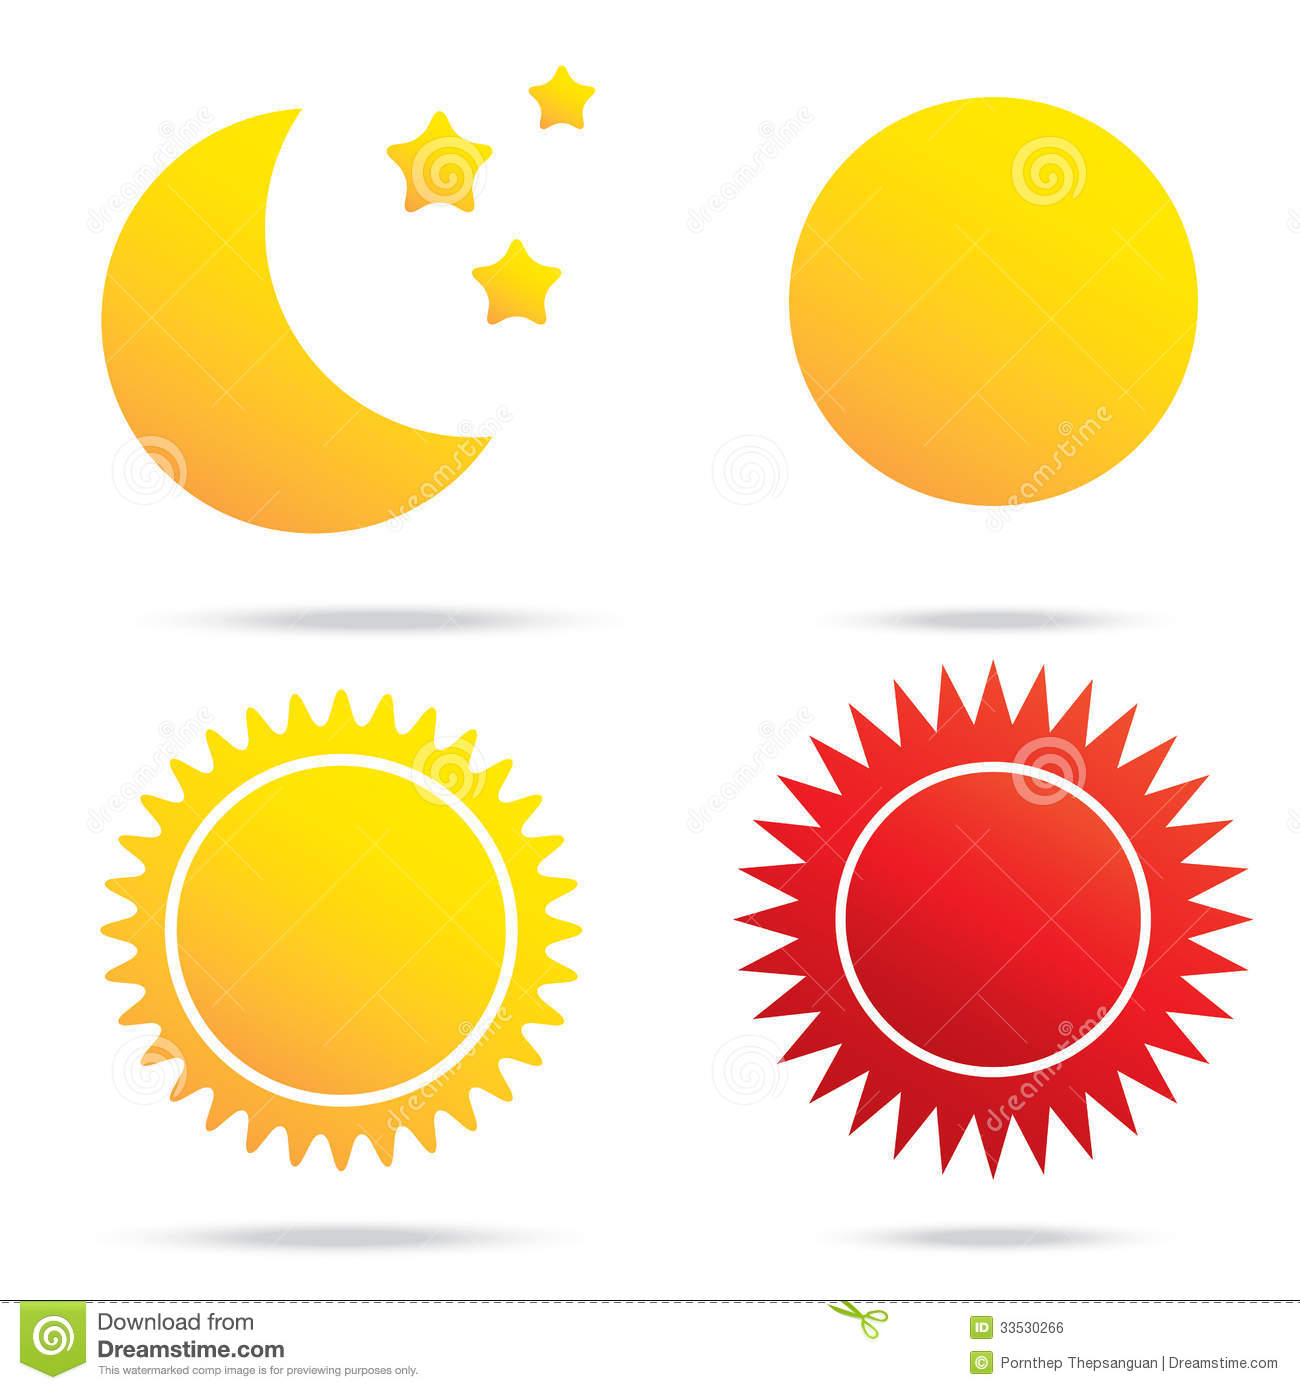 Moon sun and star symbol stock vector illustration of design 33530266 moon sun and star symbol biocorpaavc Images